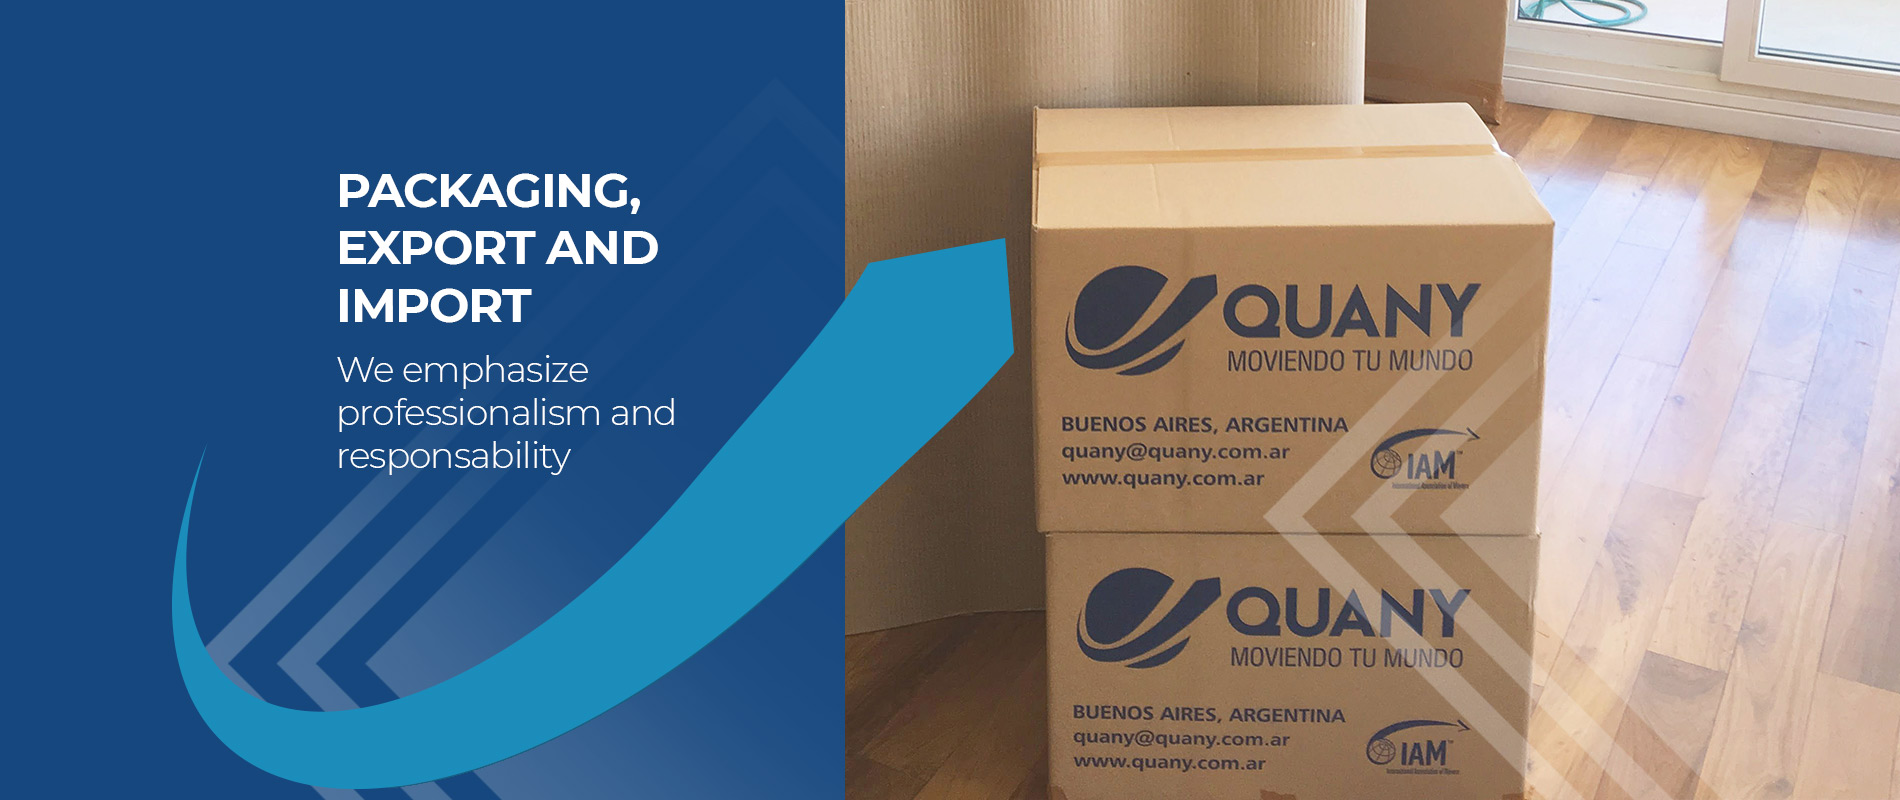 Packaging, export and import